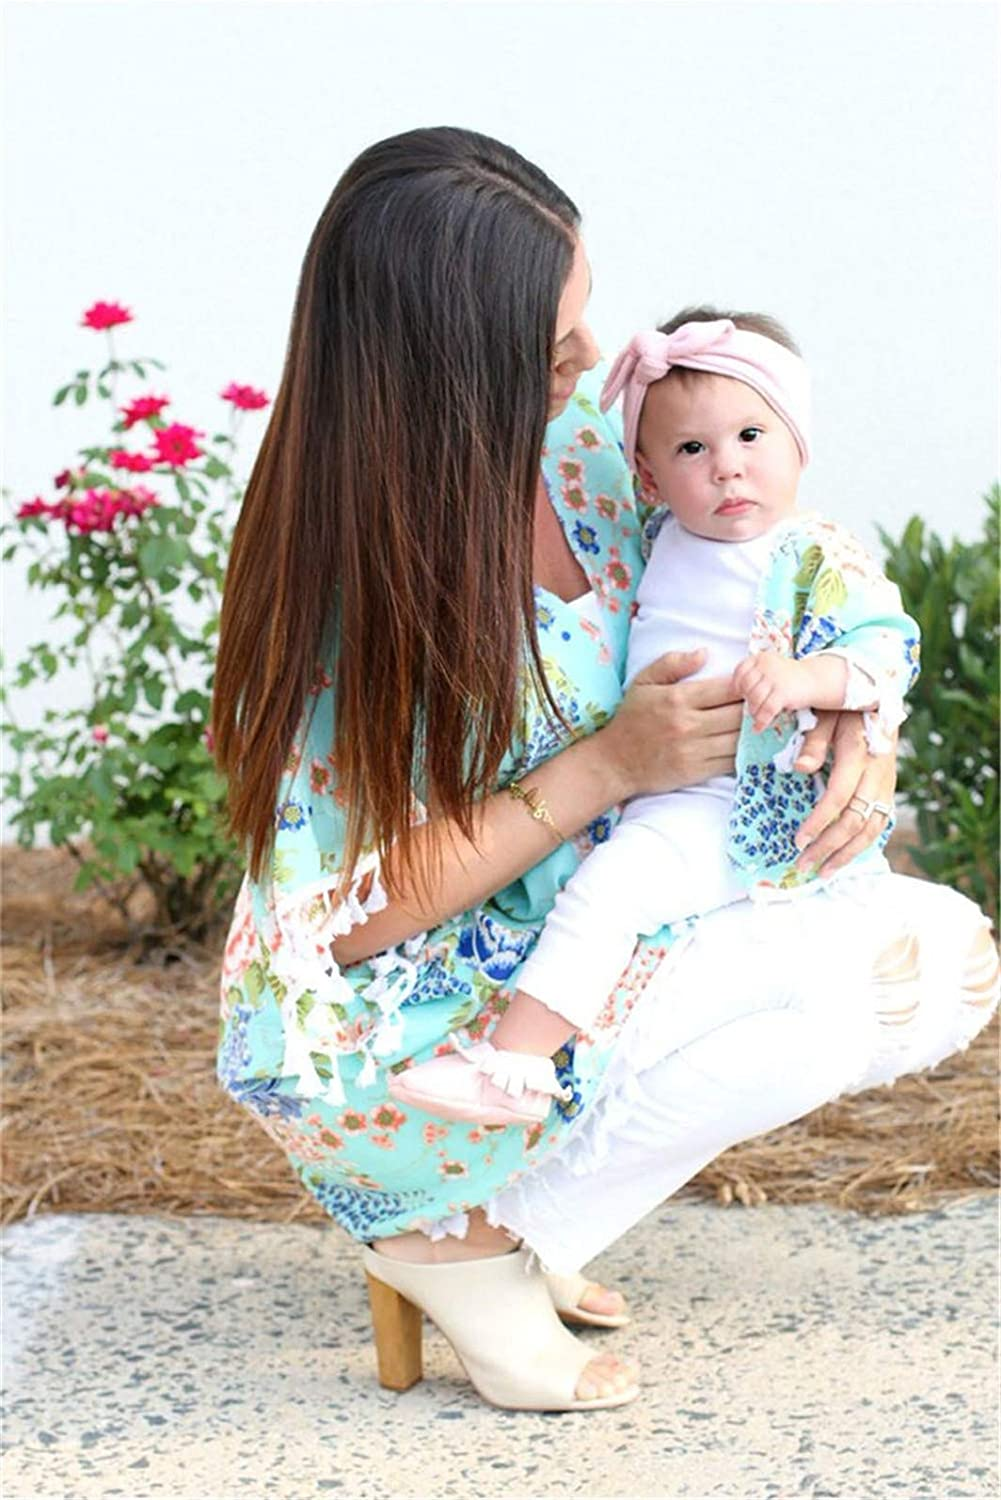 SJIAO Mommy and Me Shirts Fall Cardigan Blouse Top Women Baby Girl Matching Outfit Flower Shawl Mom&Me Family Clothes